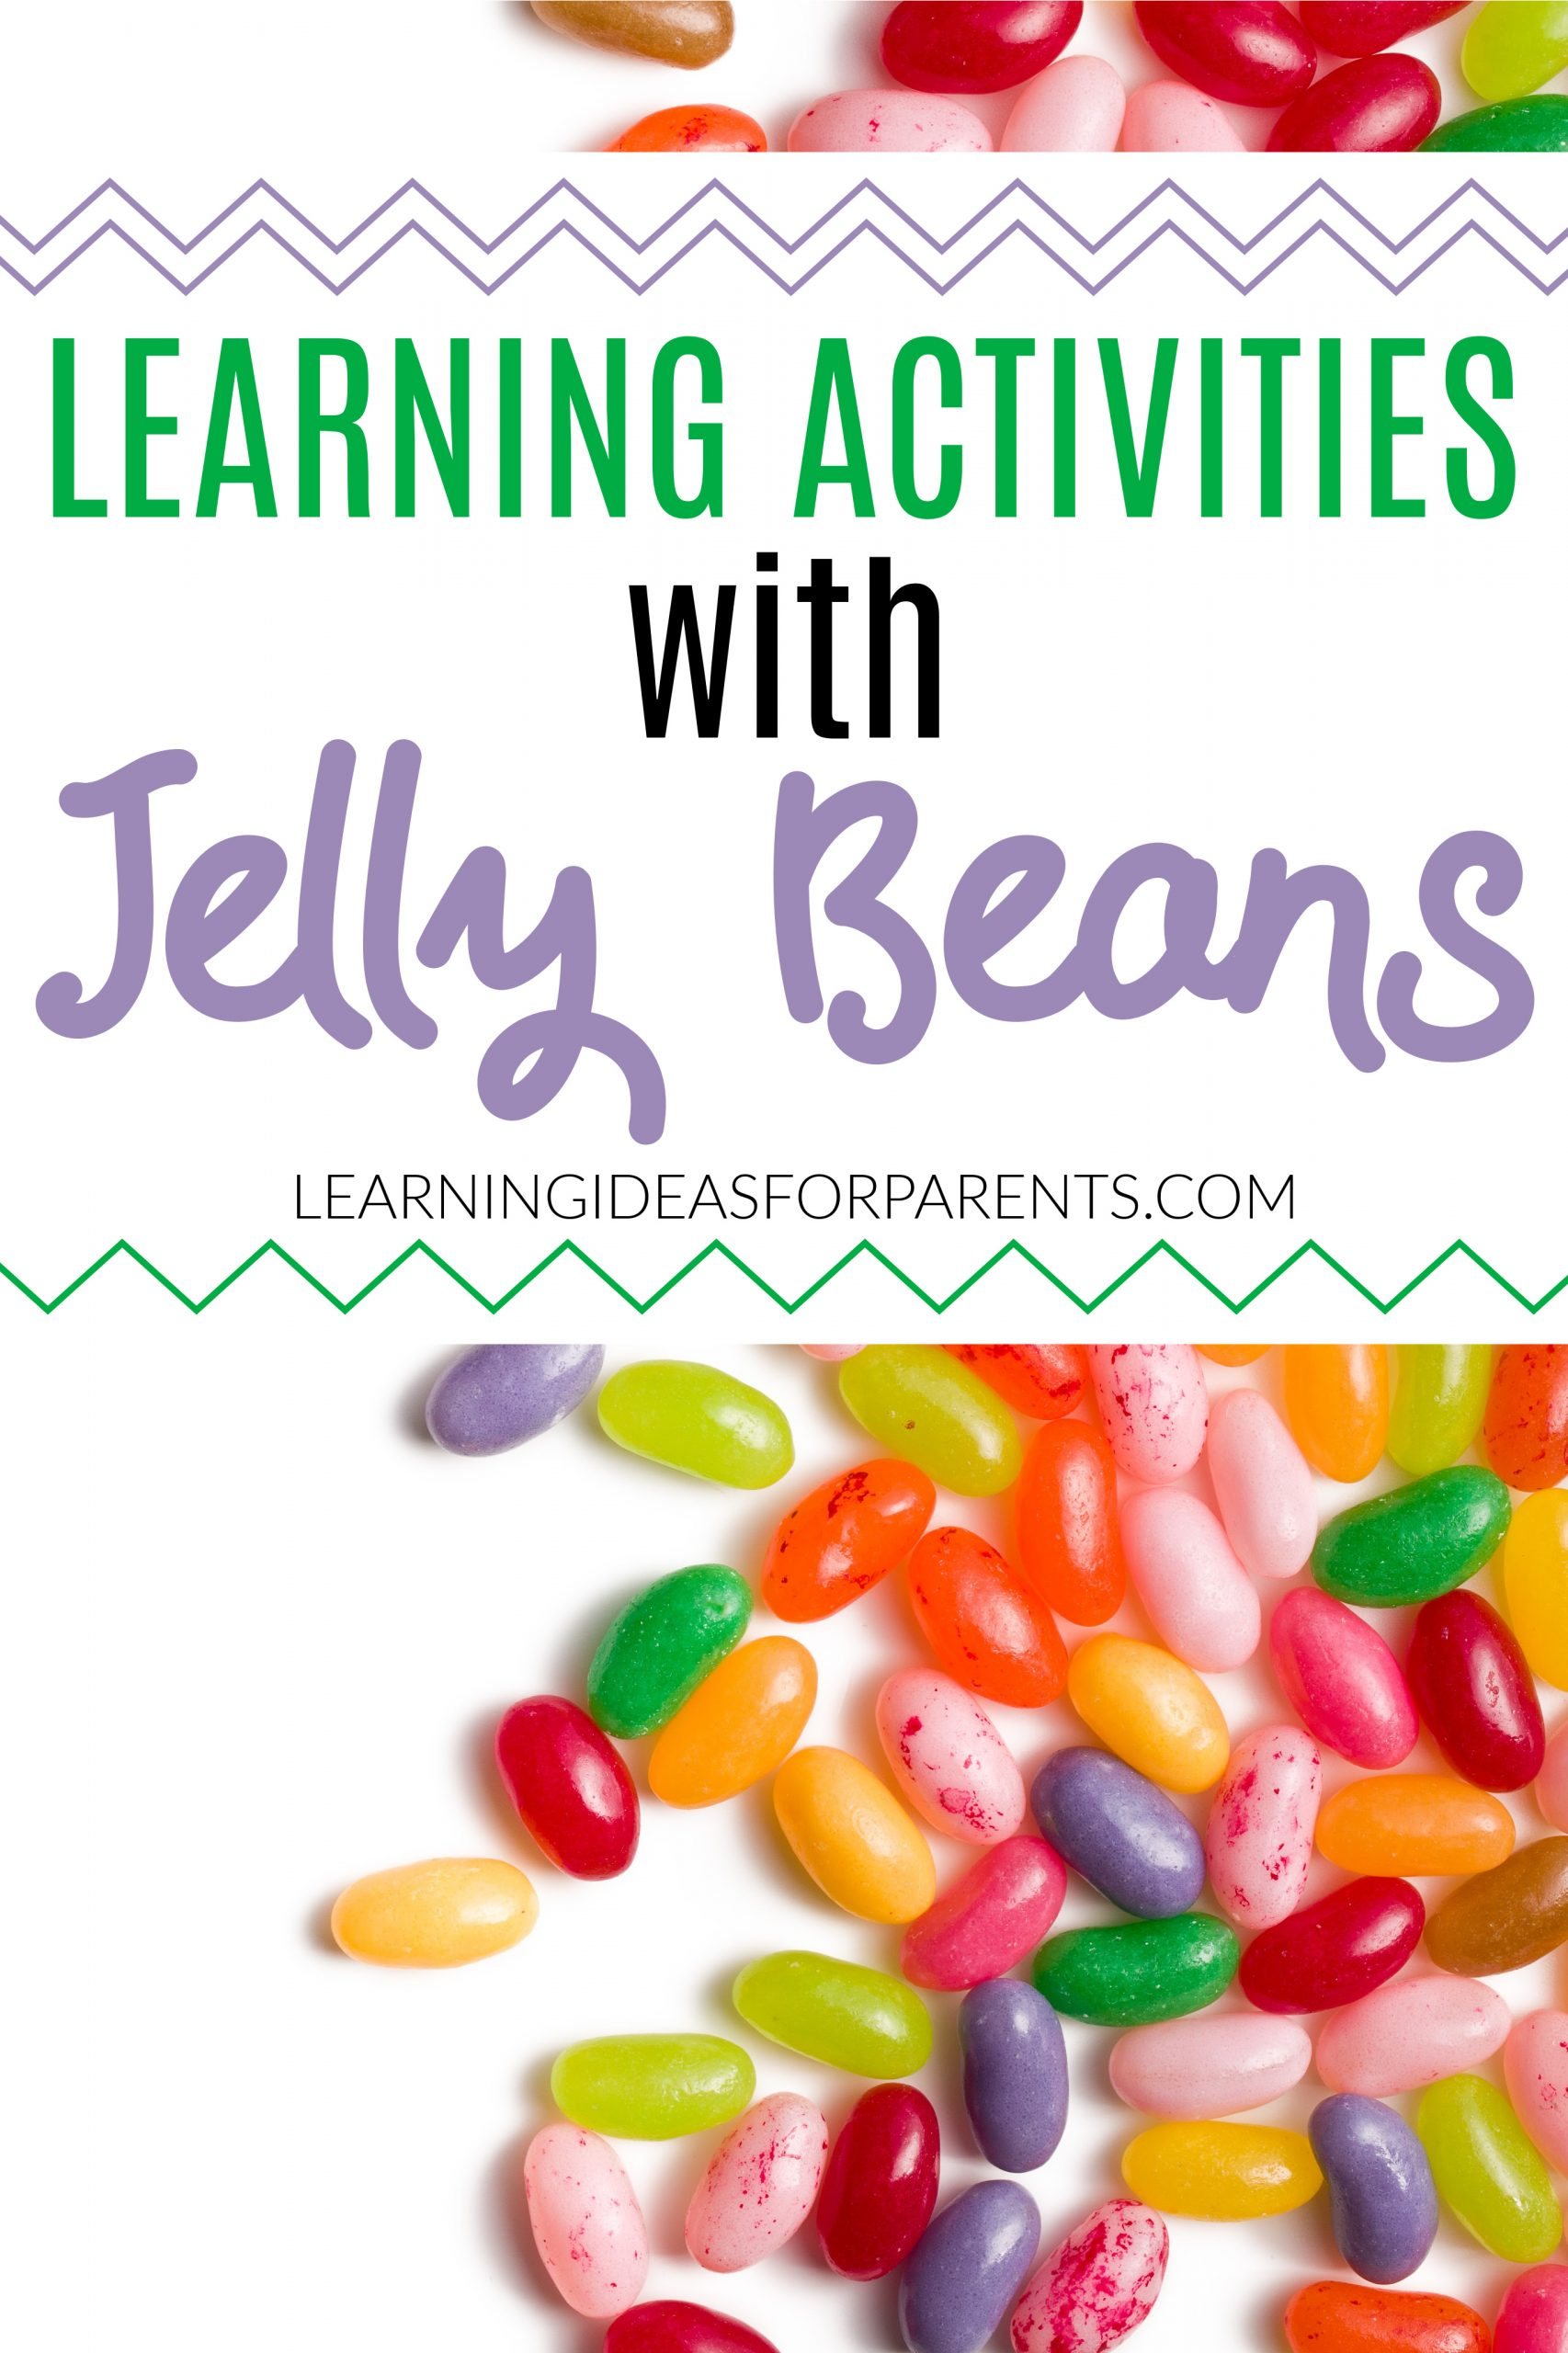 Colorful jelly beans for learning activities.